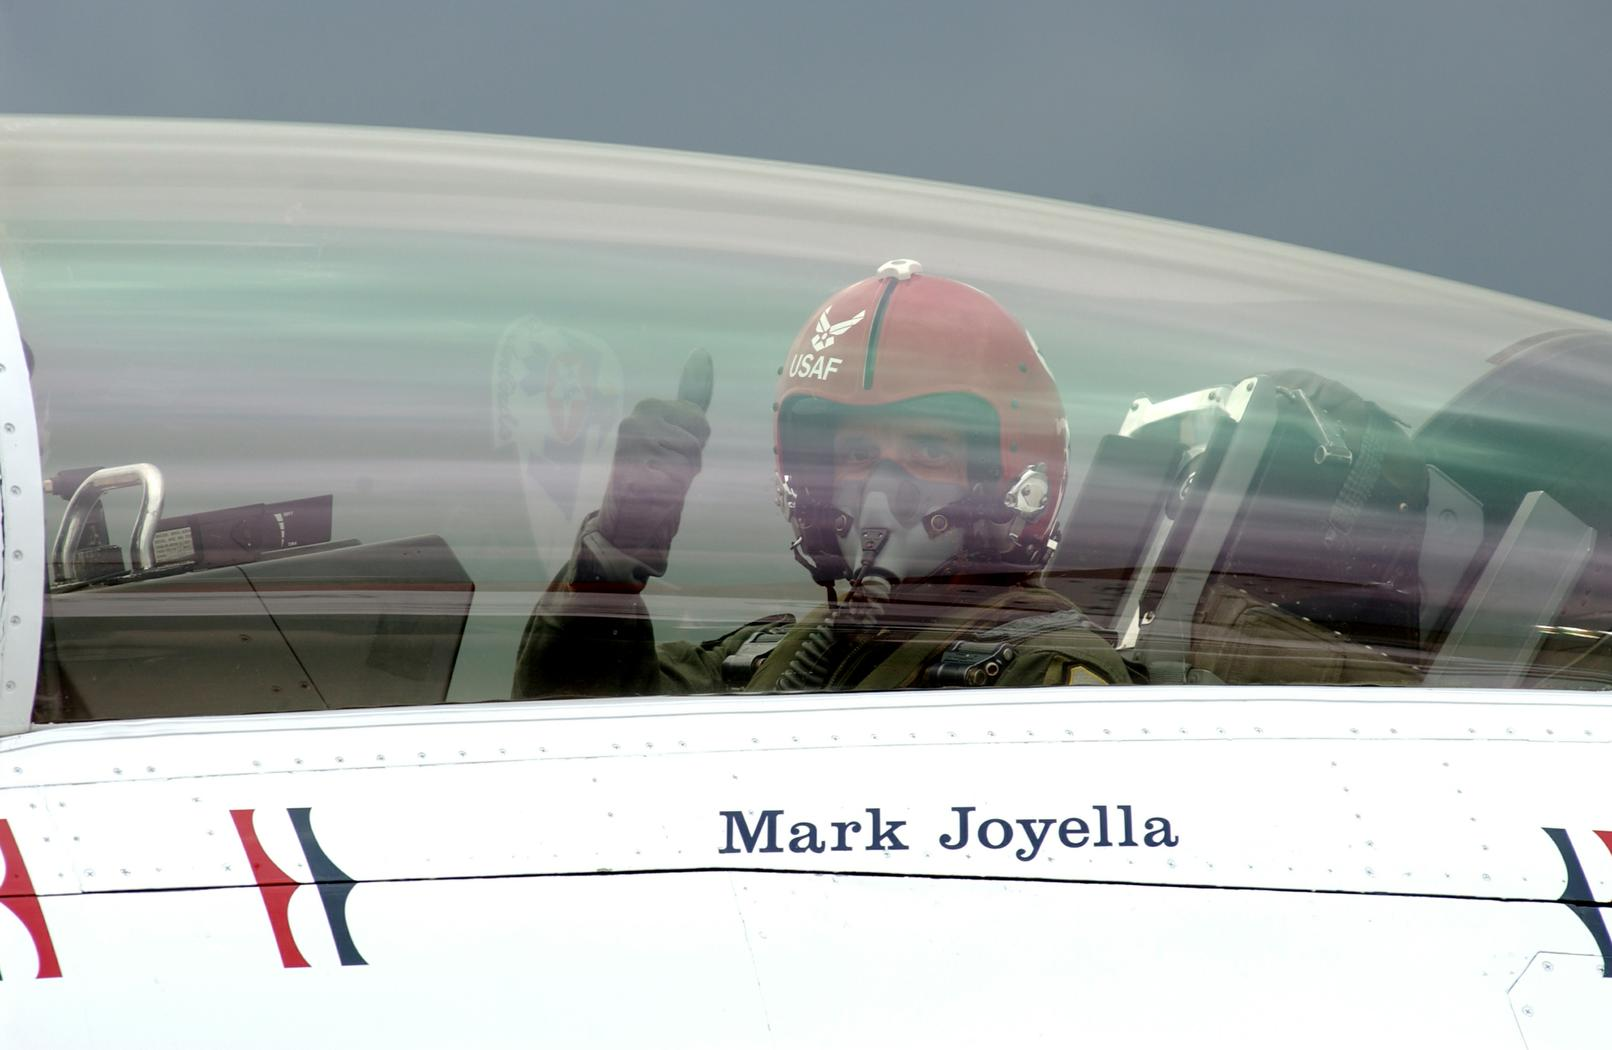 Mark Joyella